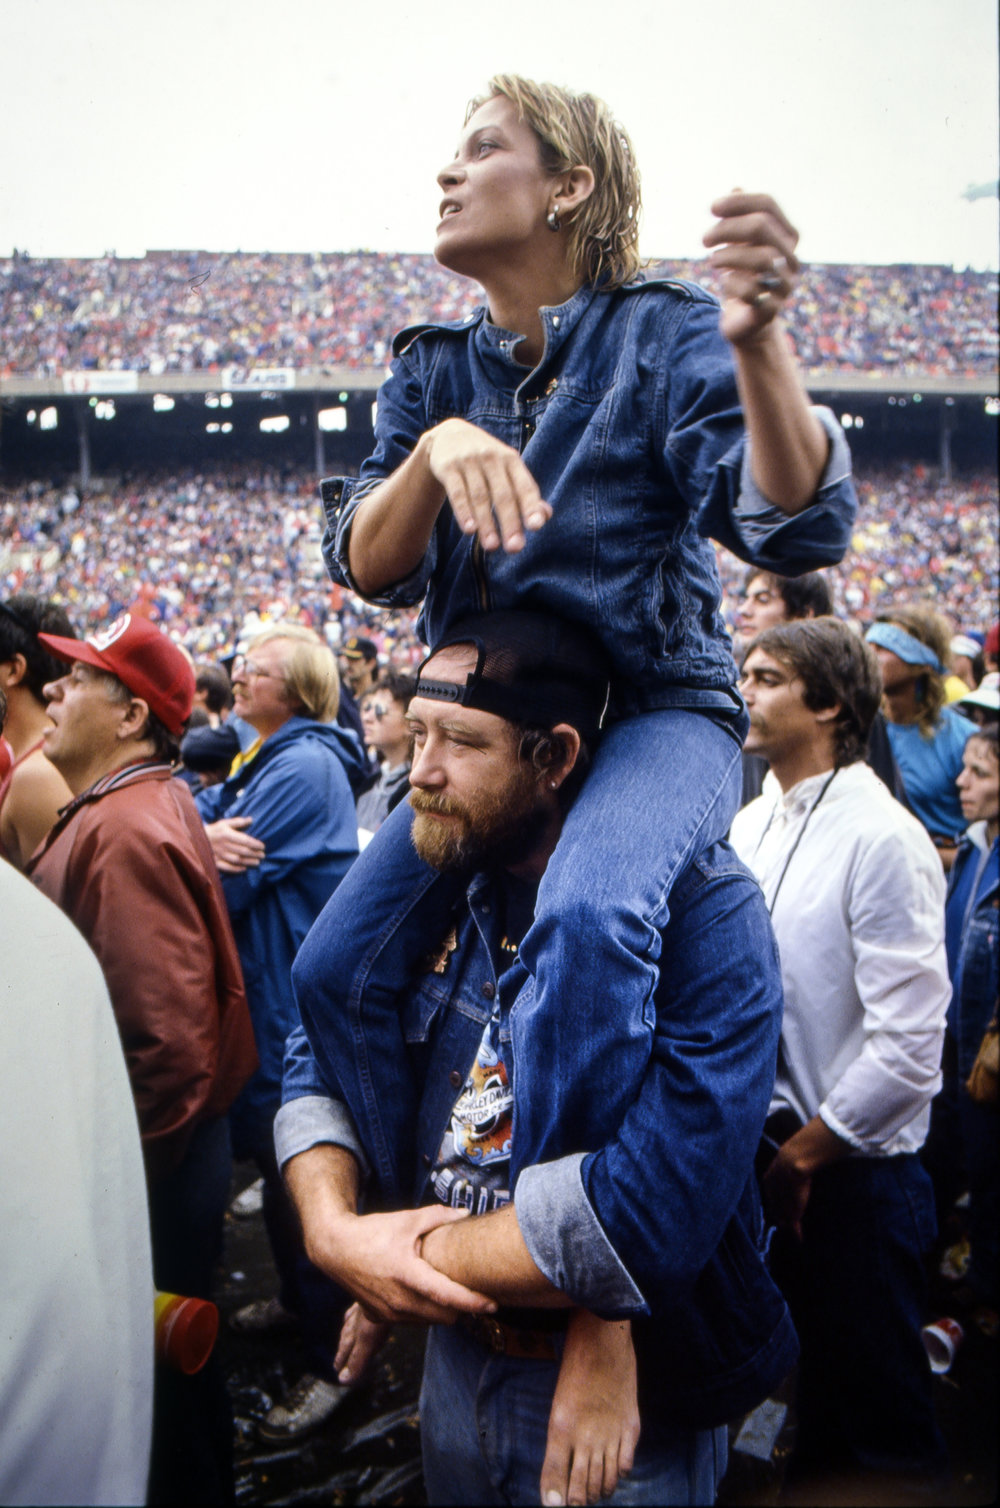 A woman gets a better view sitting on the shoulders of a friend at the Farm Aid concert at Memorial Stadium in Champaign, Ill. Sept. 22, 1985. [File/The State Journal-Register]